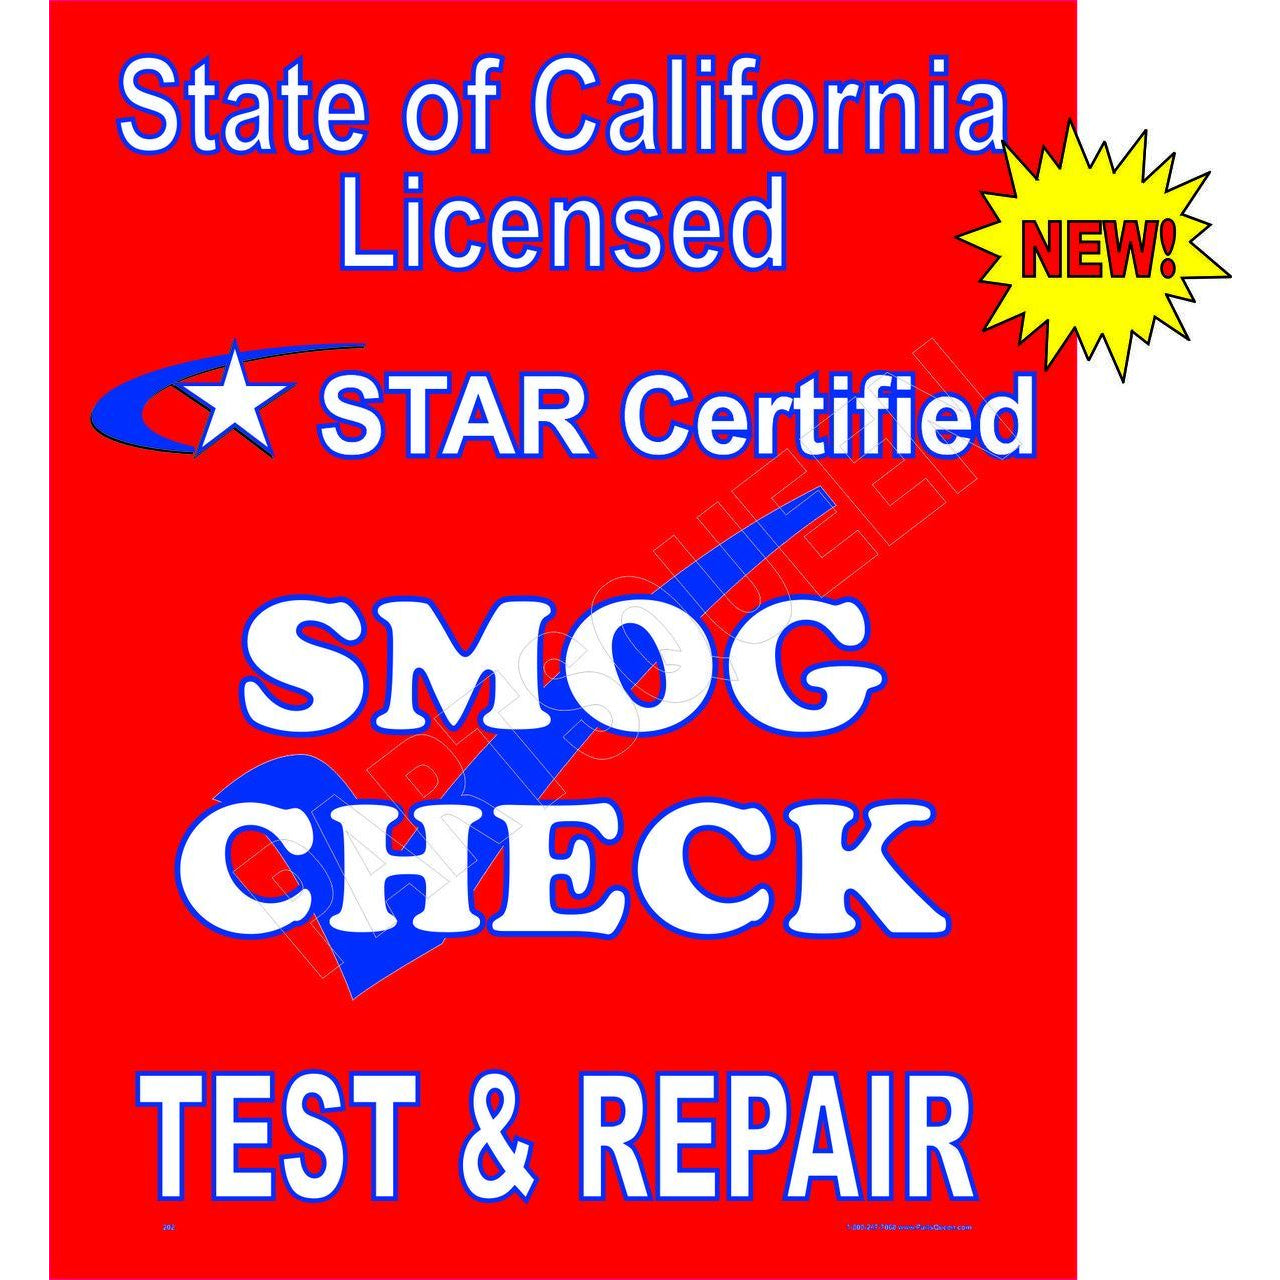 STAR CERTIFIED TEST & REPAIR SHIELD # DS202